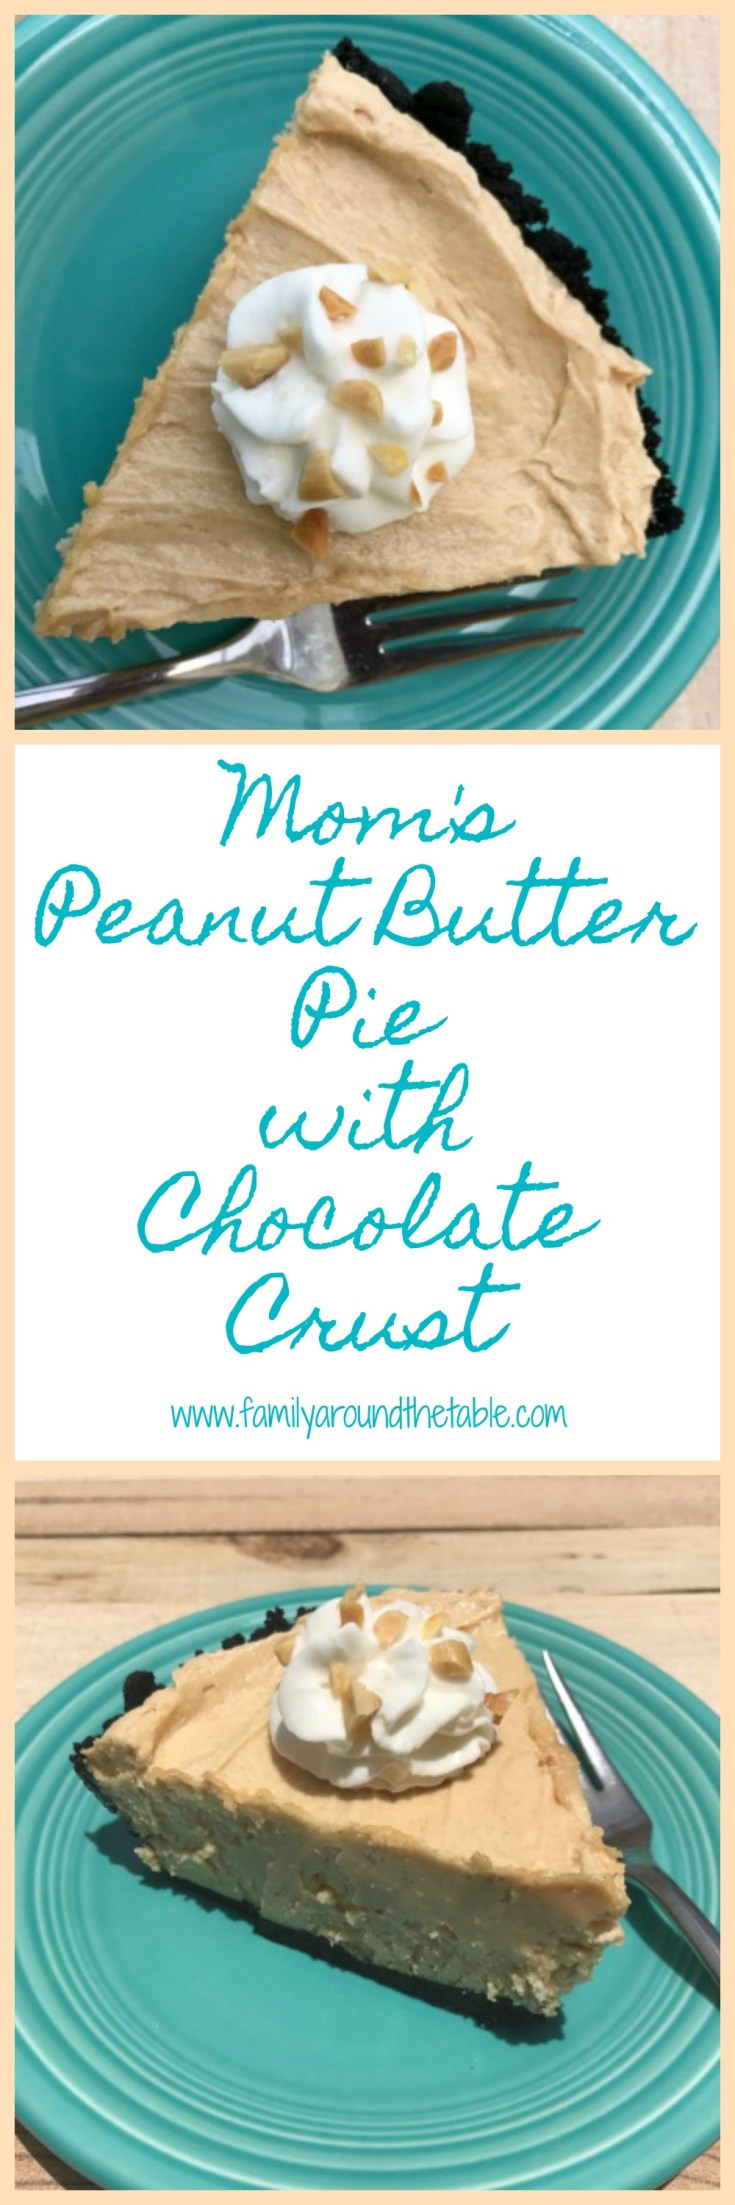 Mom's Peanut Butter Pie with Chocolate Crust is yummy any time of year. It's cool, creamy and delicious on a hot day. Ideal for potluck parties or a spring or summer cookout.